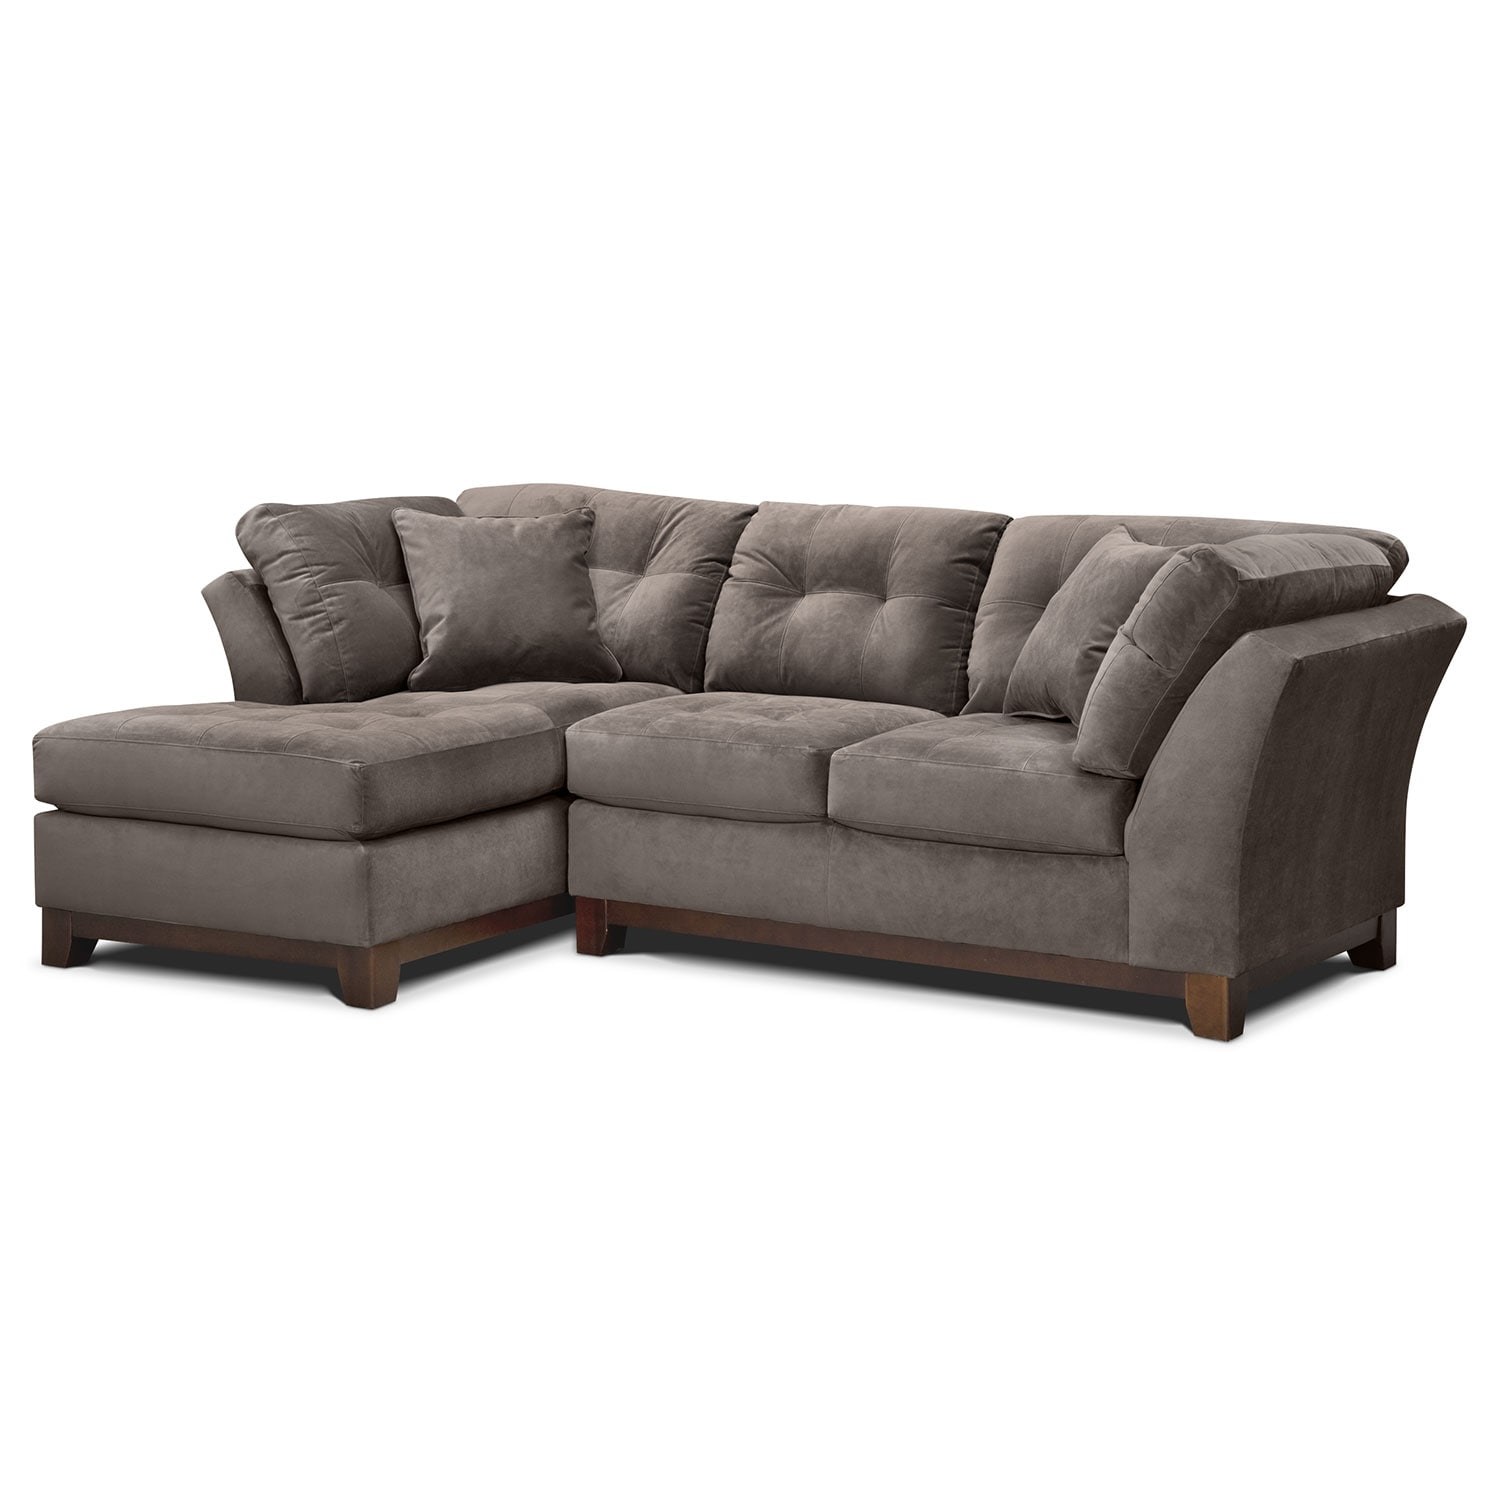 Living Room Furniture - Solace Gray II 2 Pc. Sectional (Alternate)